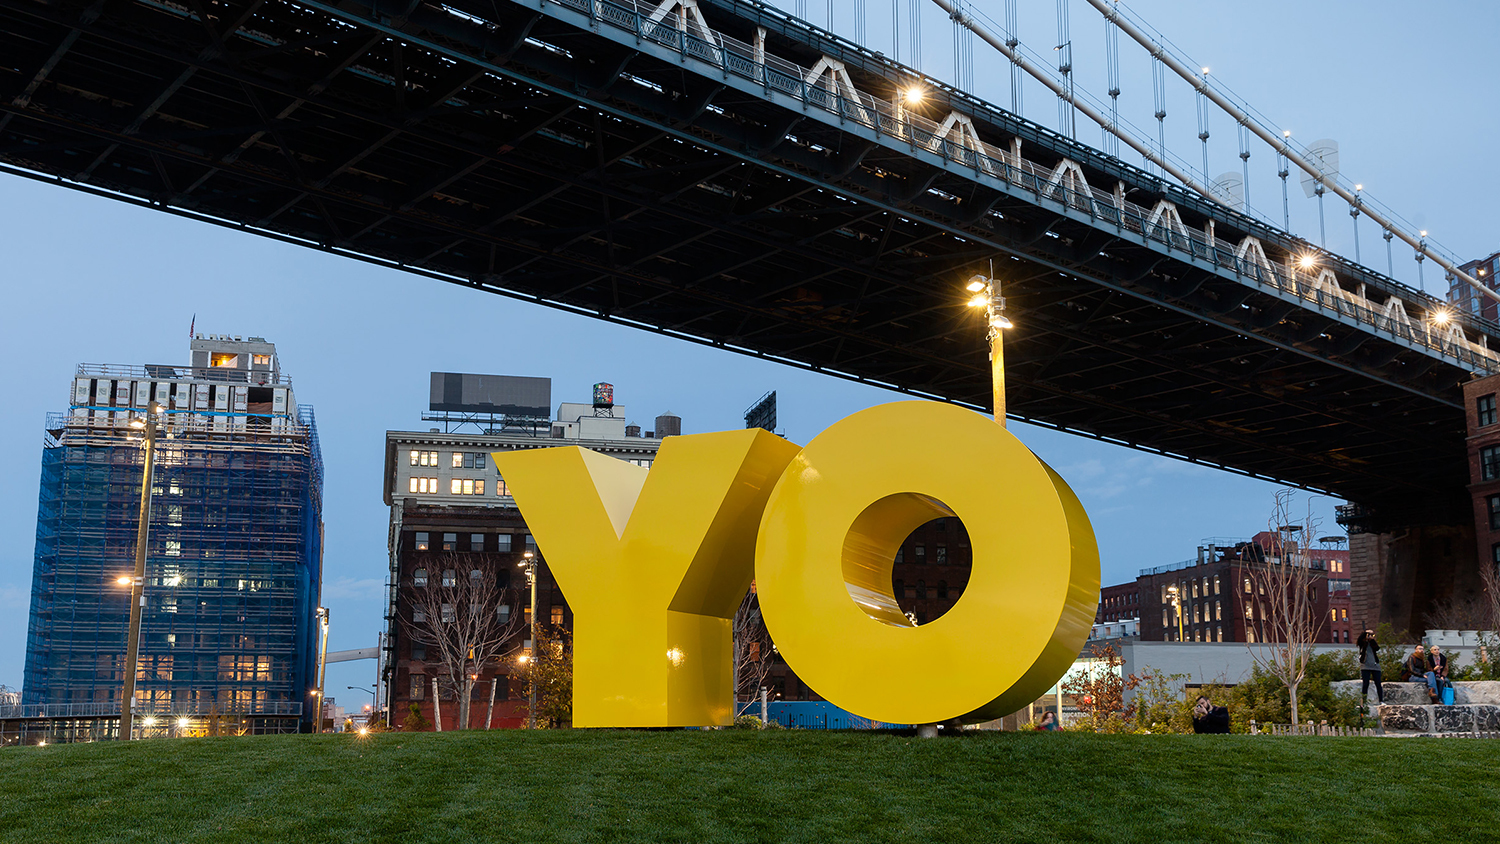 The best public art to see in NYC this winter